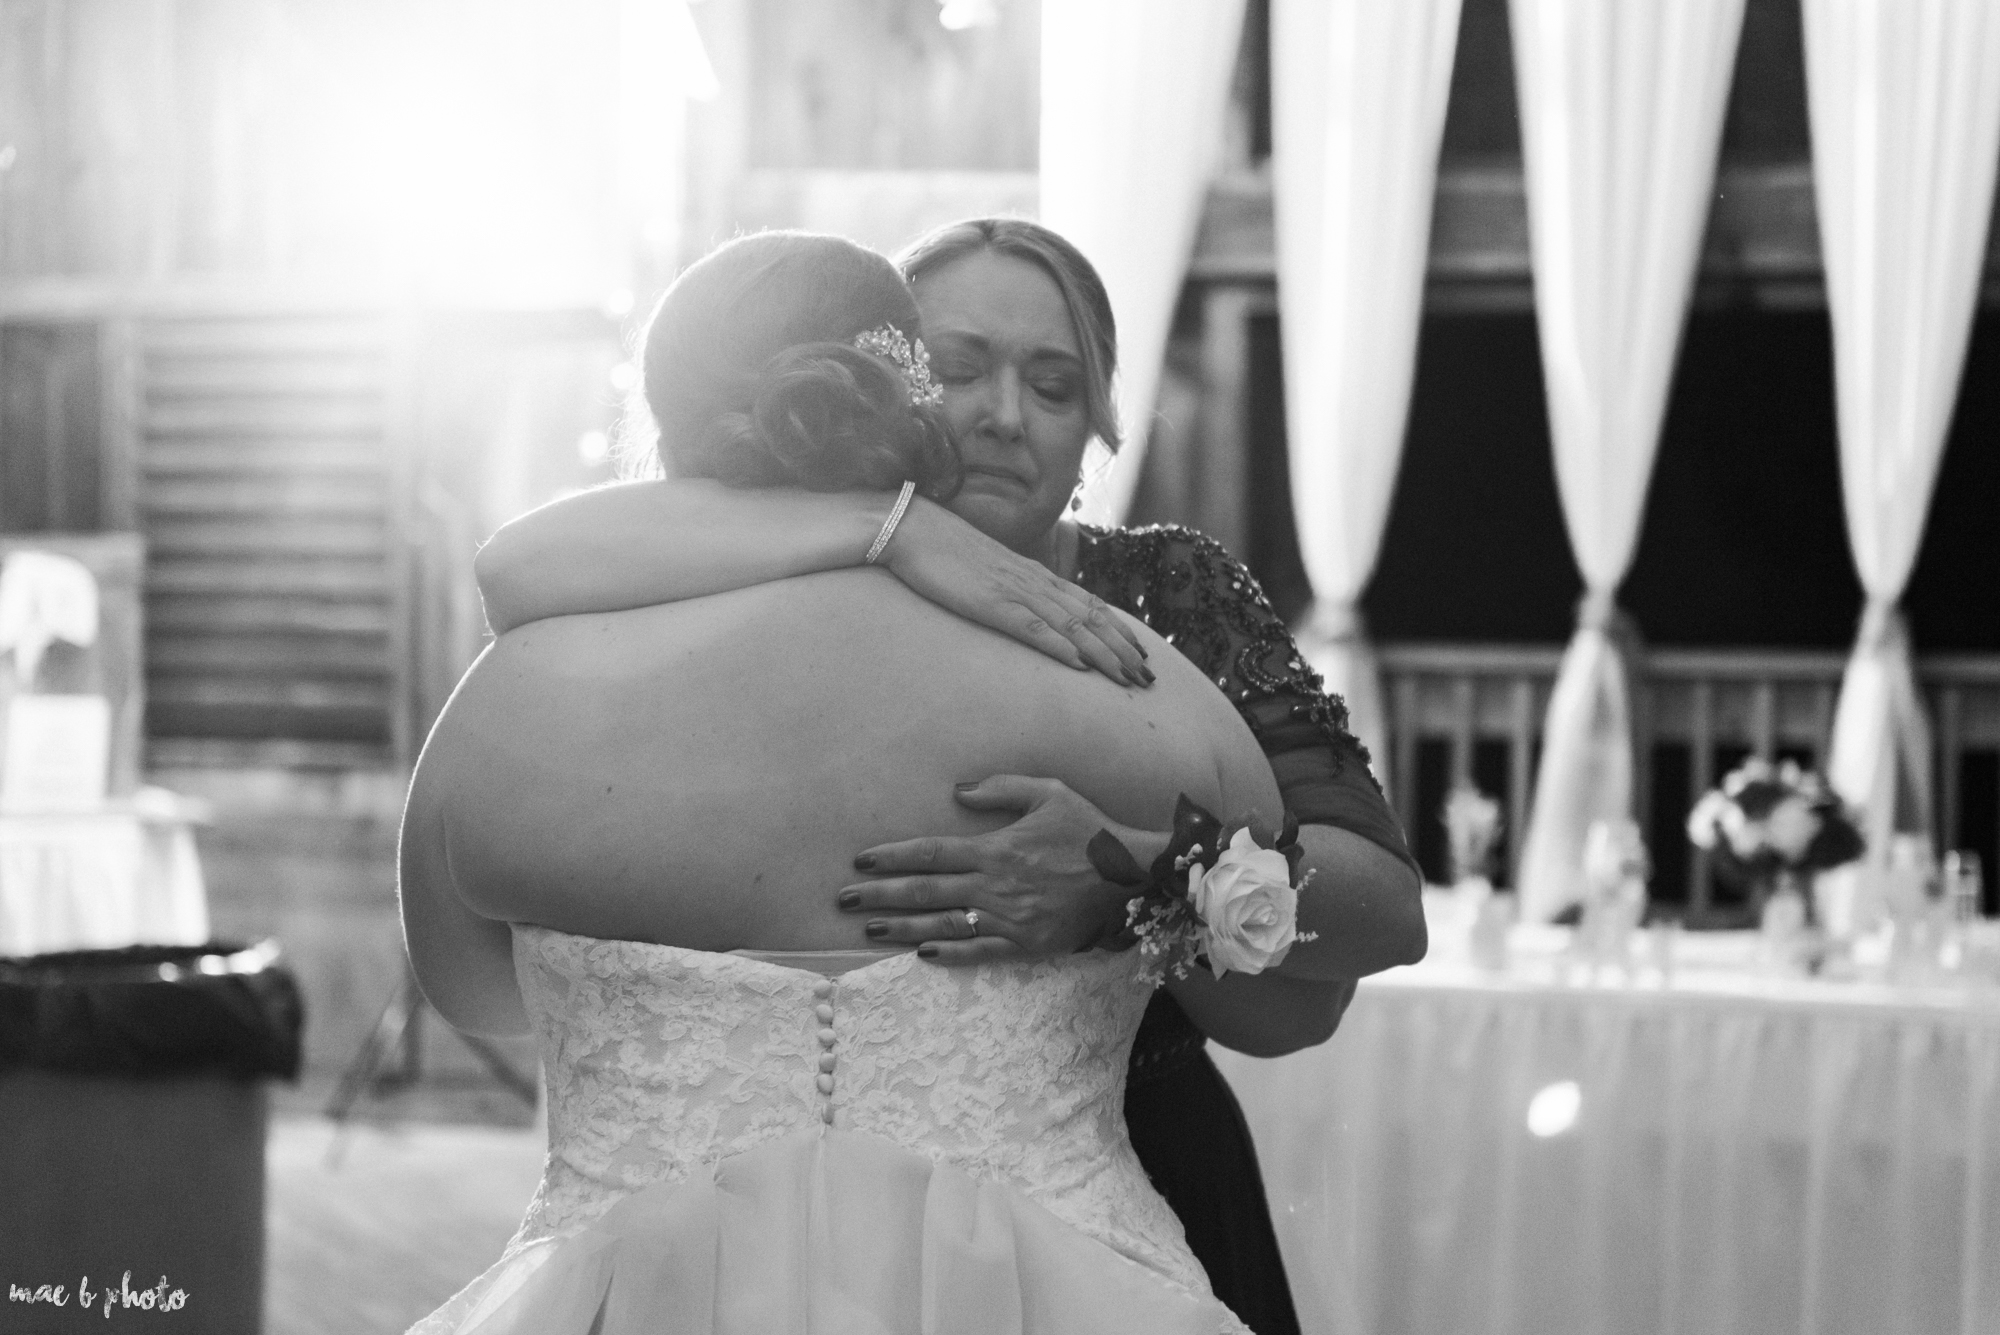 Amber & Kyle's Rustic Barn Wedding at SNPJ in Enon Valley, PA by Mae B Photo-103.jpg